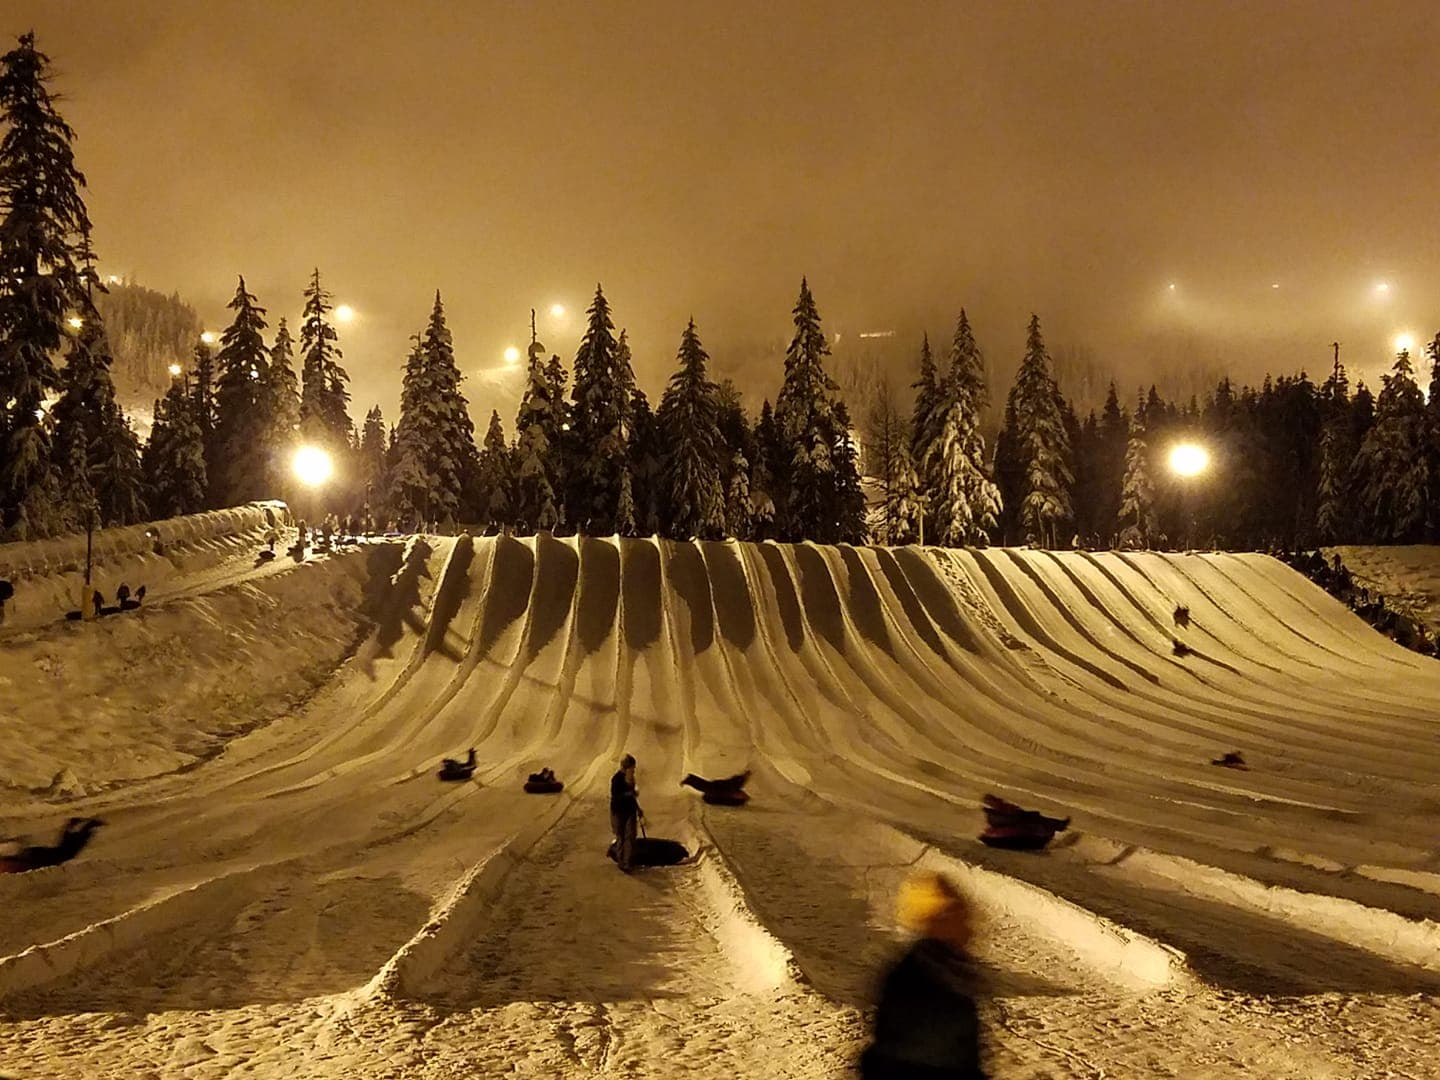 Tubing at Summit at Snoqualmie